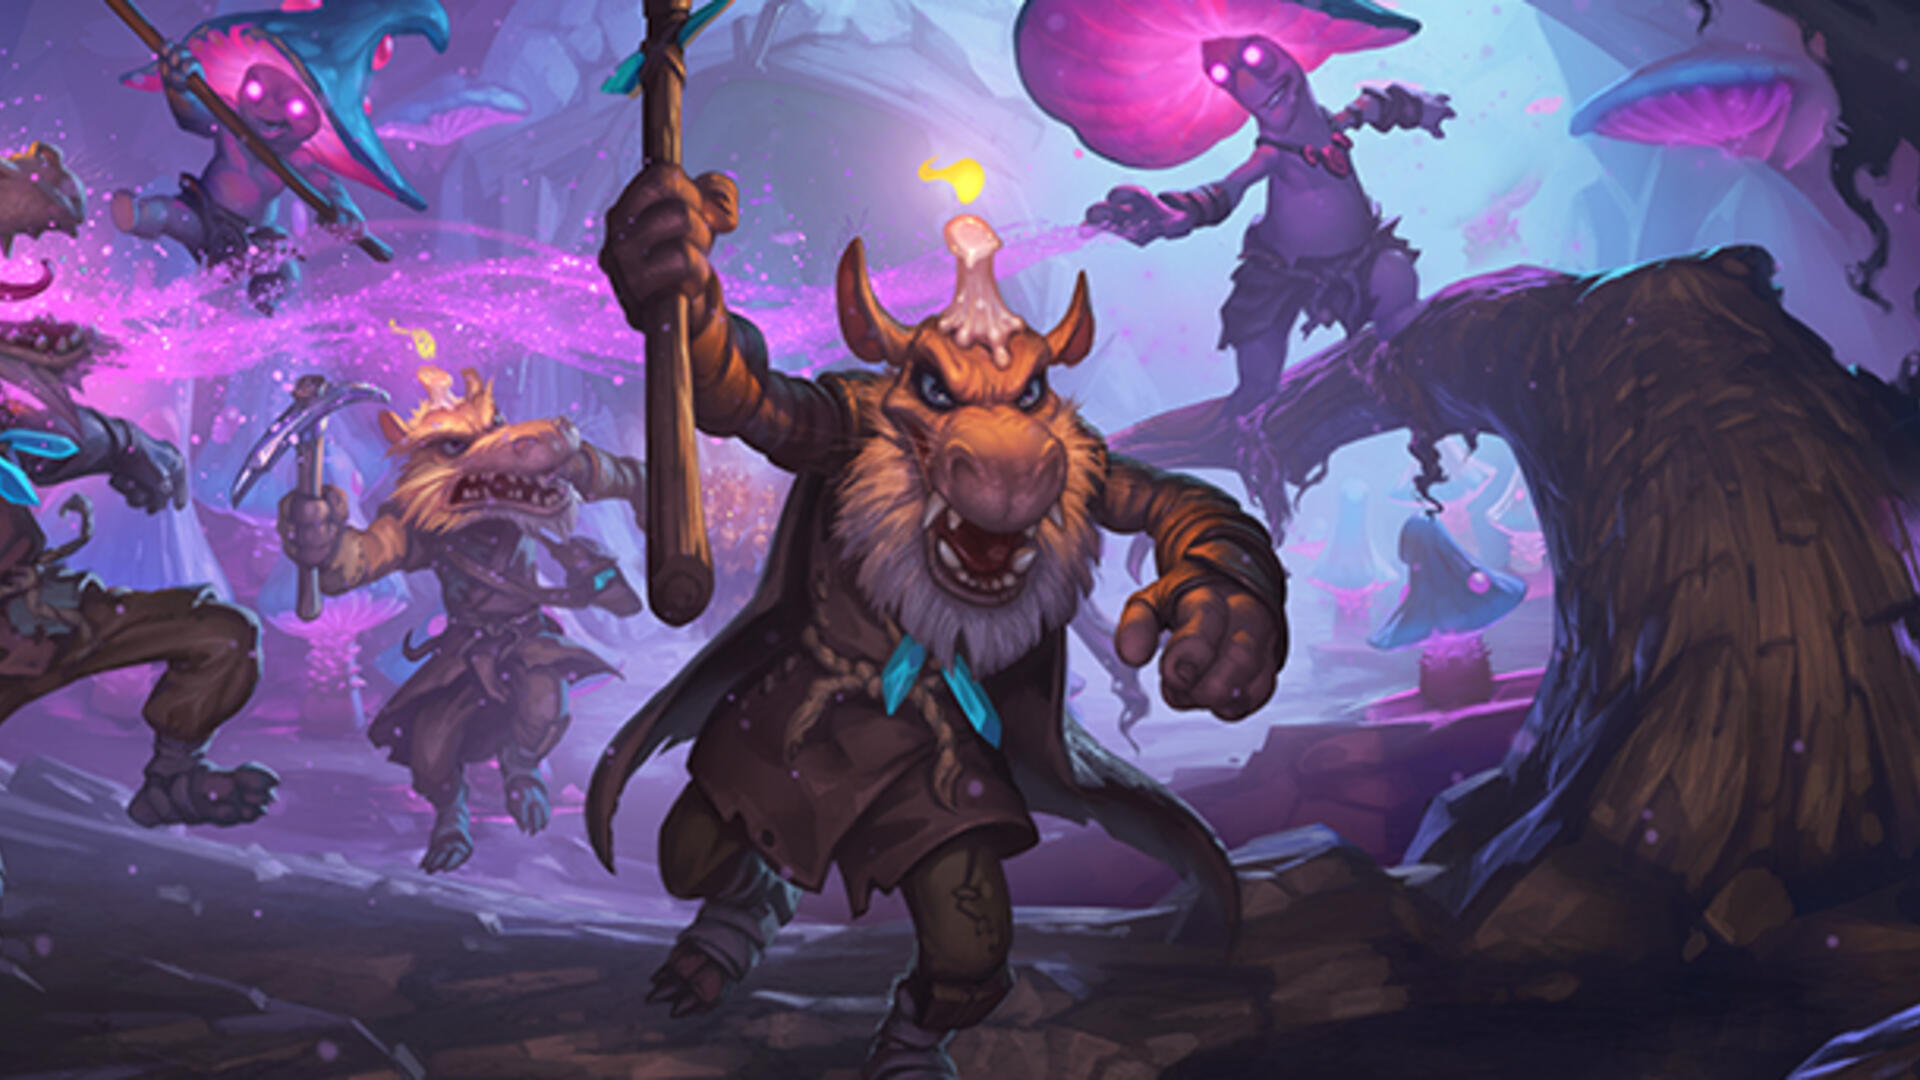 The Hearthstone Devs Go In-Depth on Dungeon Runs, and Address Safety at Fireside Gatherings